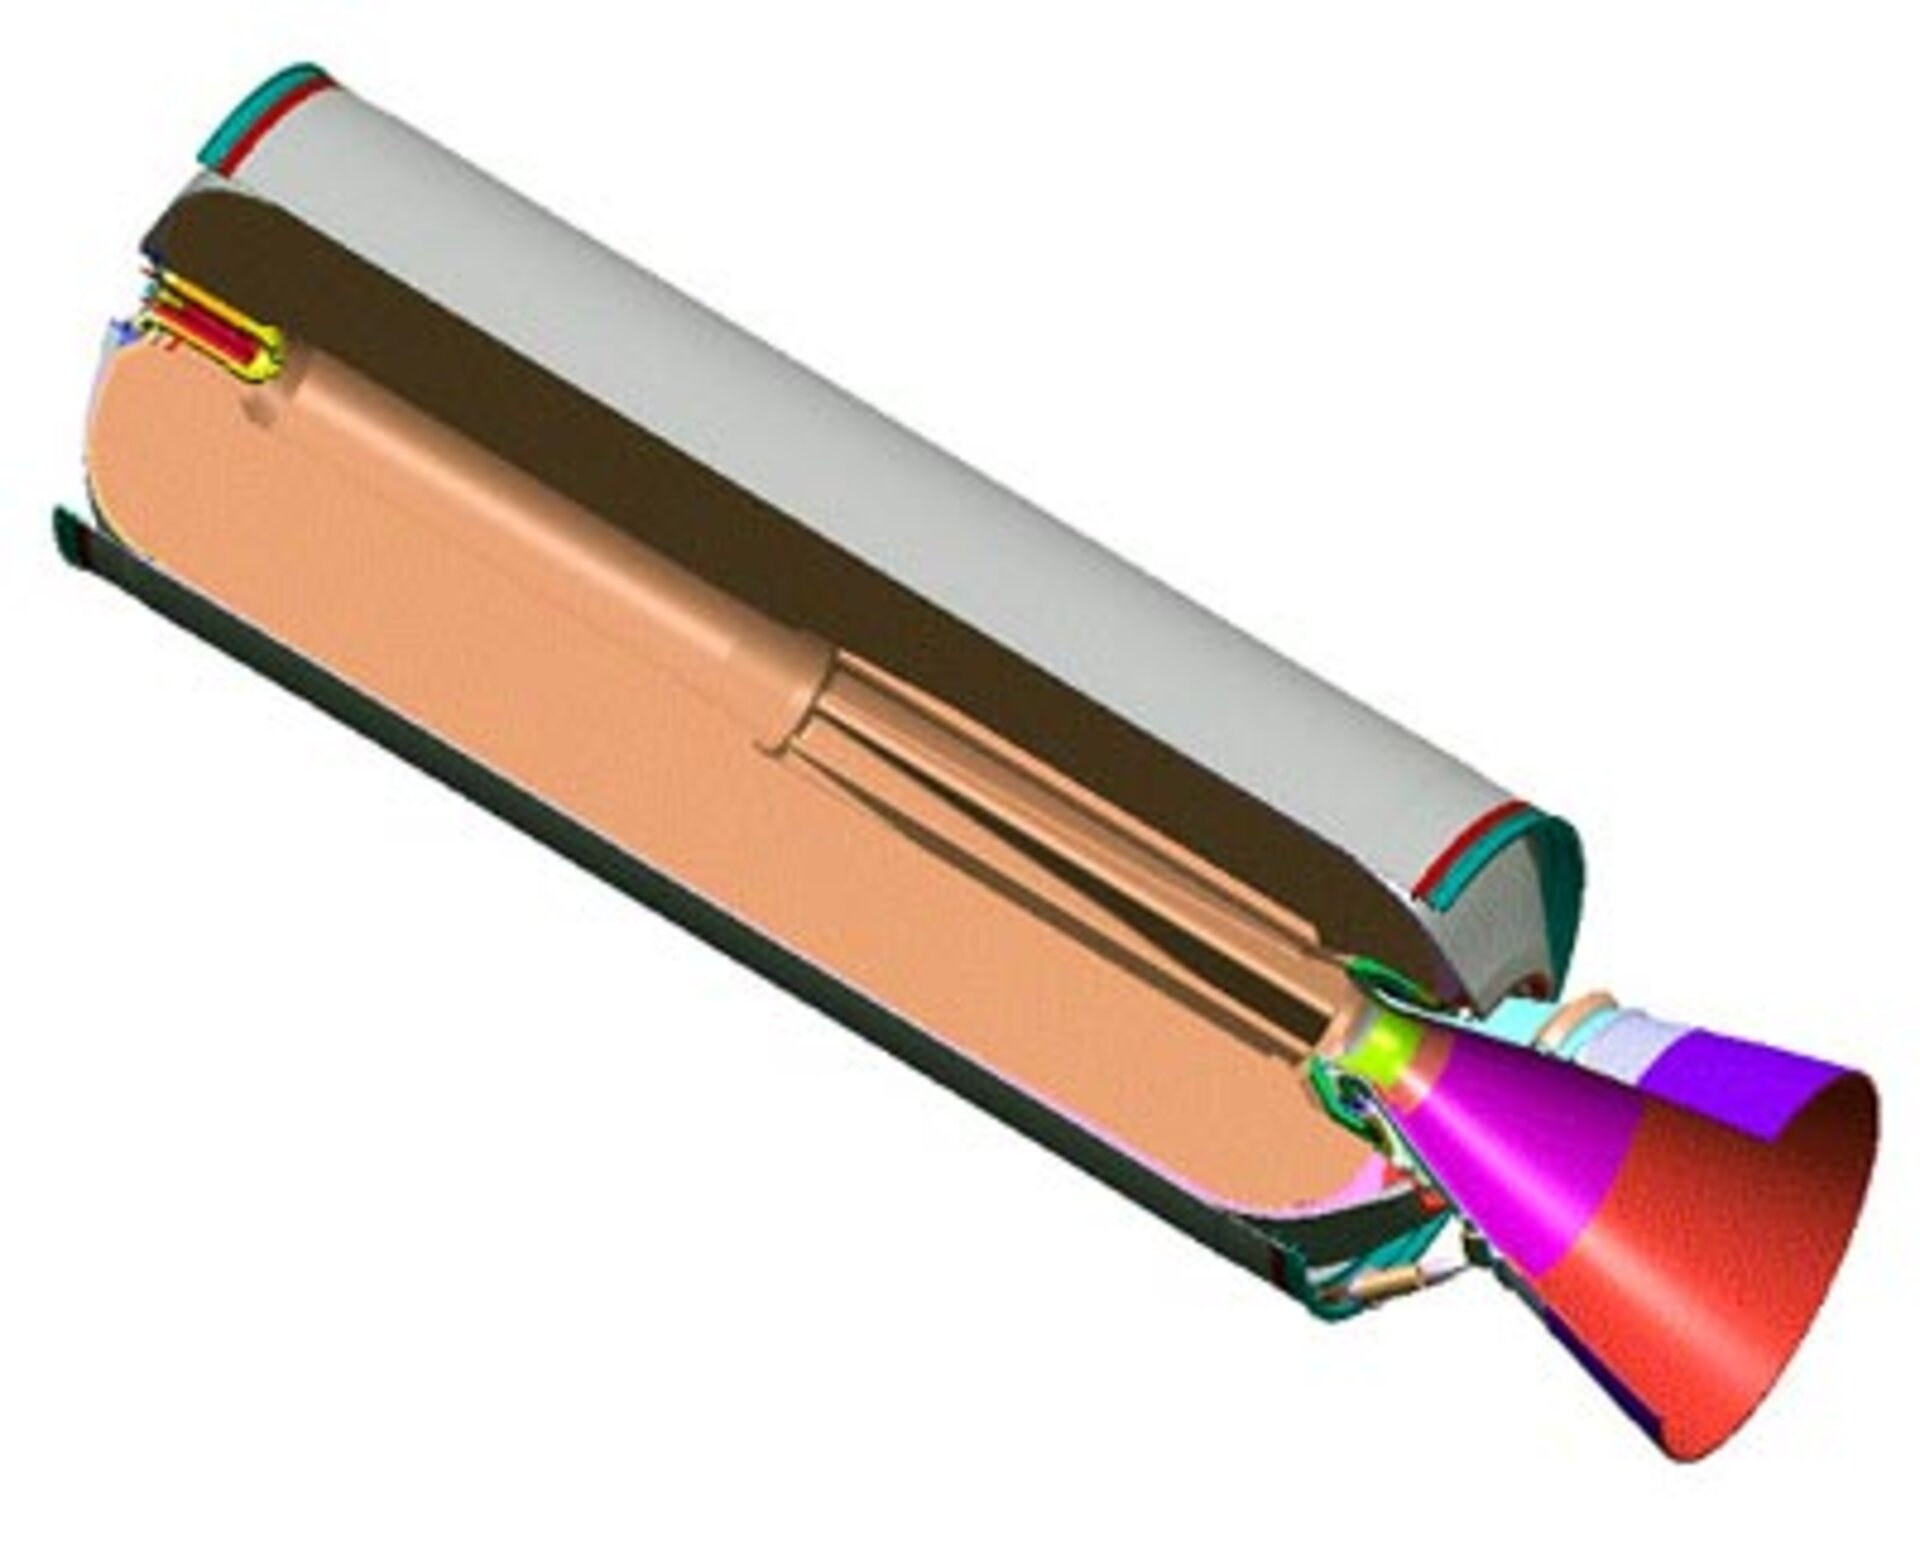 Vega second stage